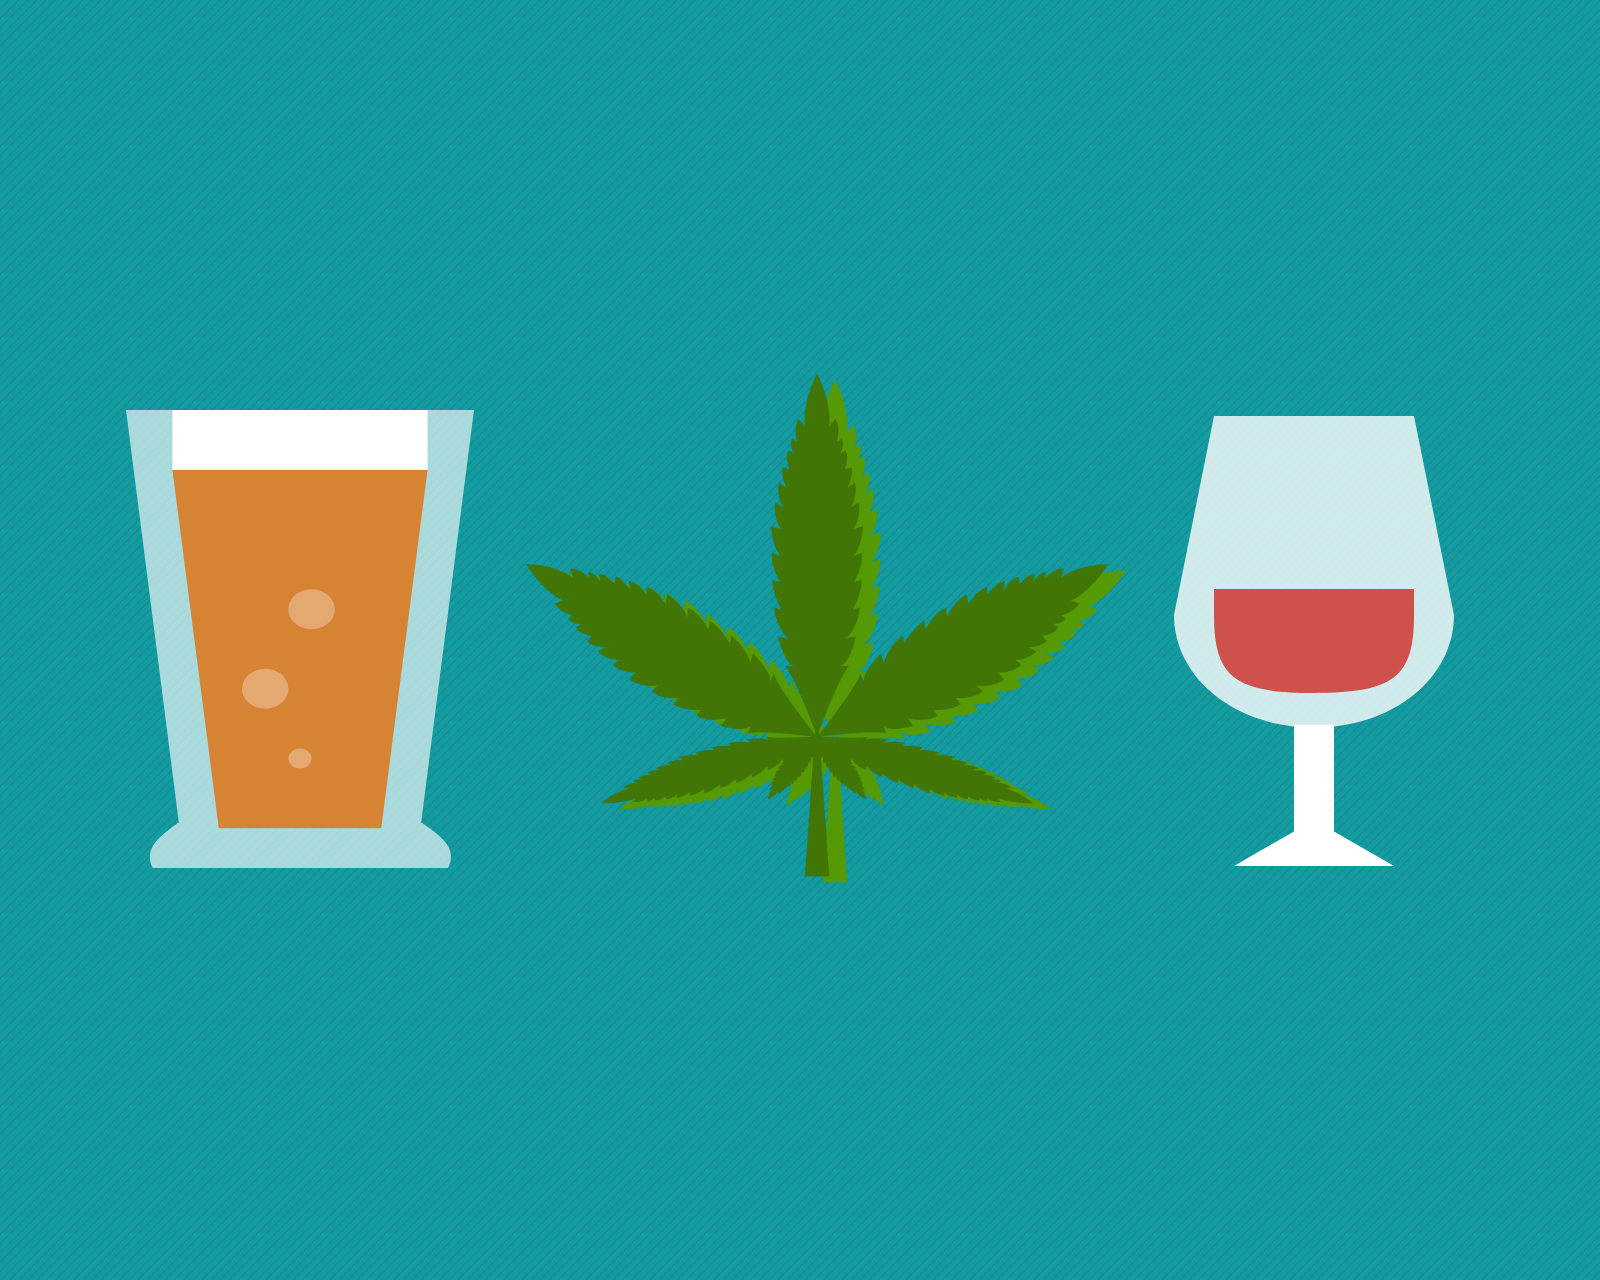 Illustration of a glass of beer, a glass of wine, and a marijuana leaf. Image credit: Chloe Oliva